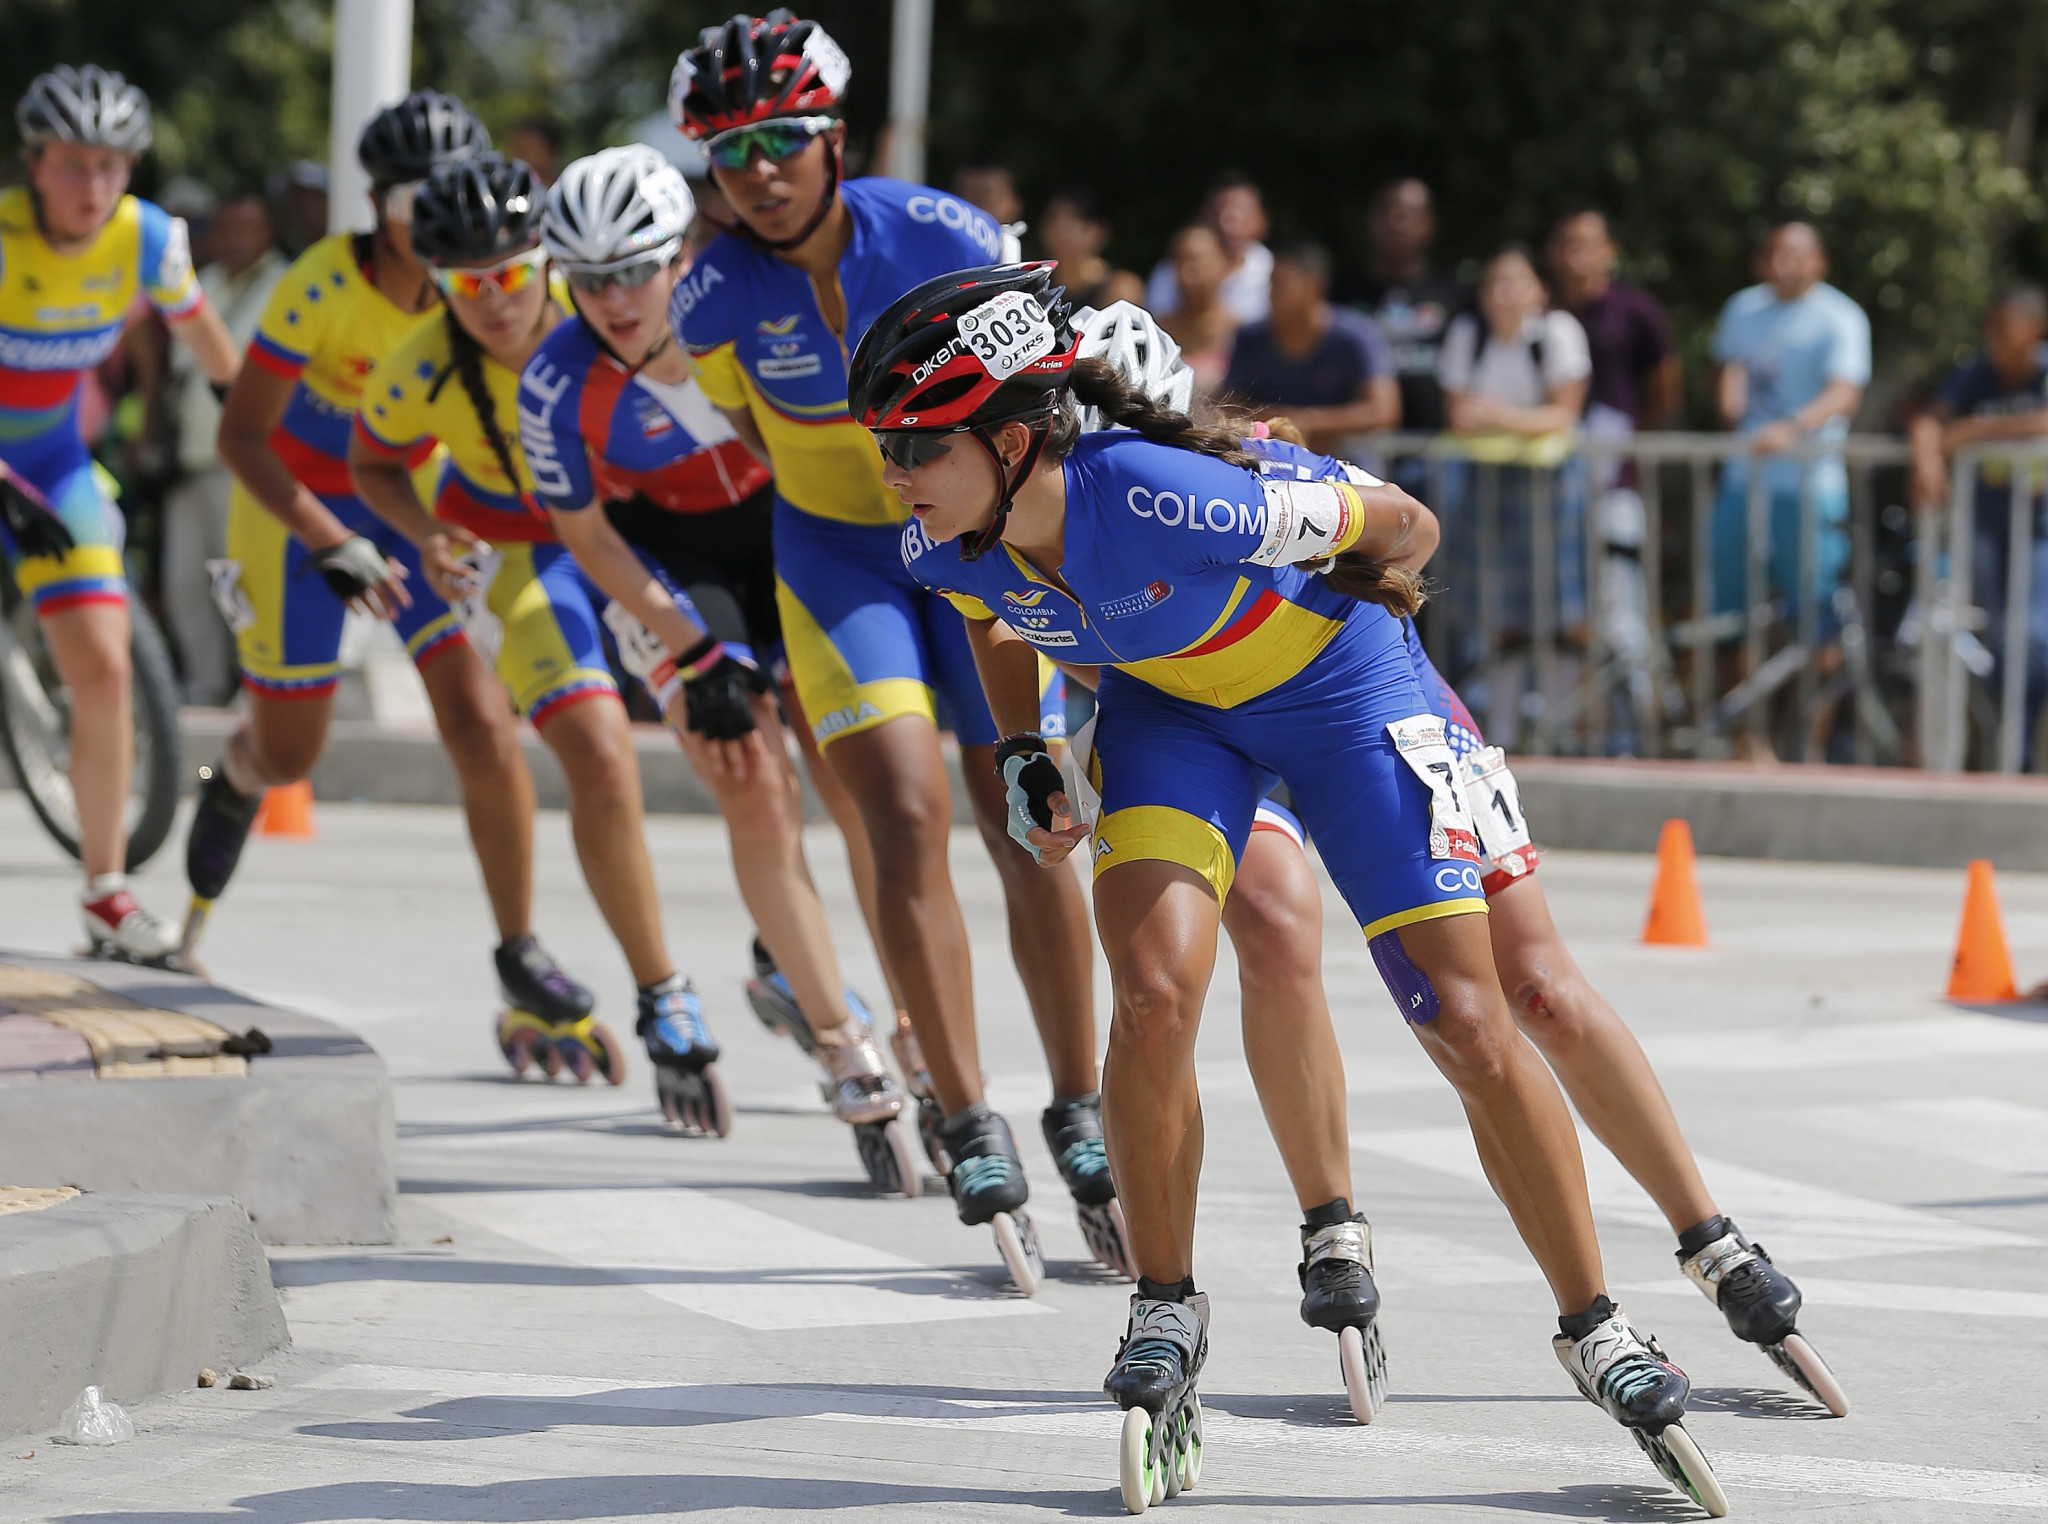 Colombia continue to dominate the Inline Speed Skating World Championships in Heerde, winning another three golds today ©Getty Images